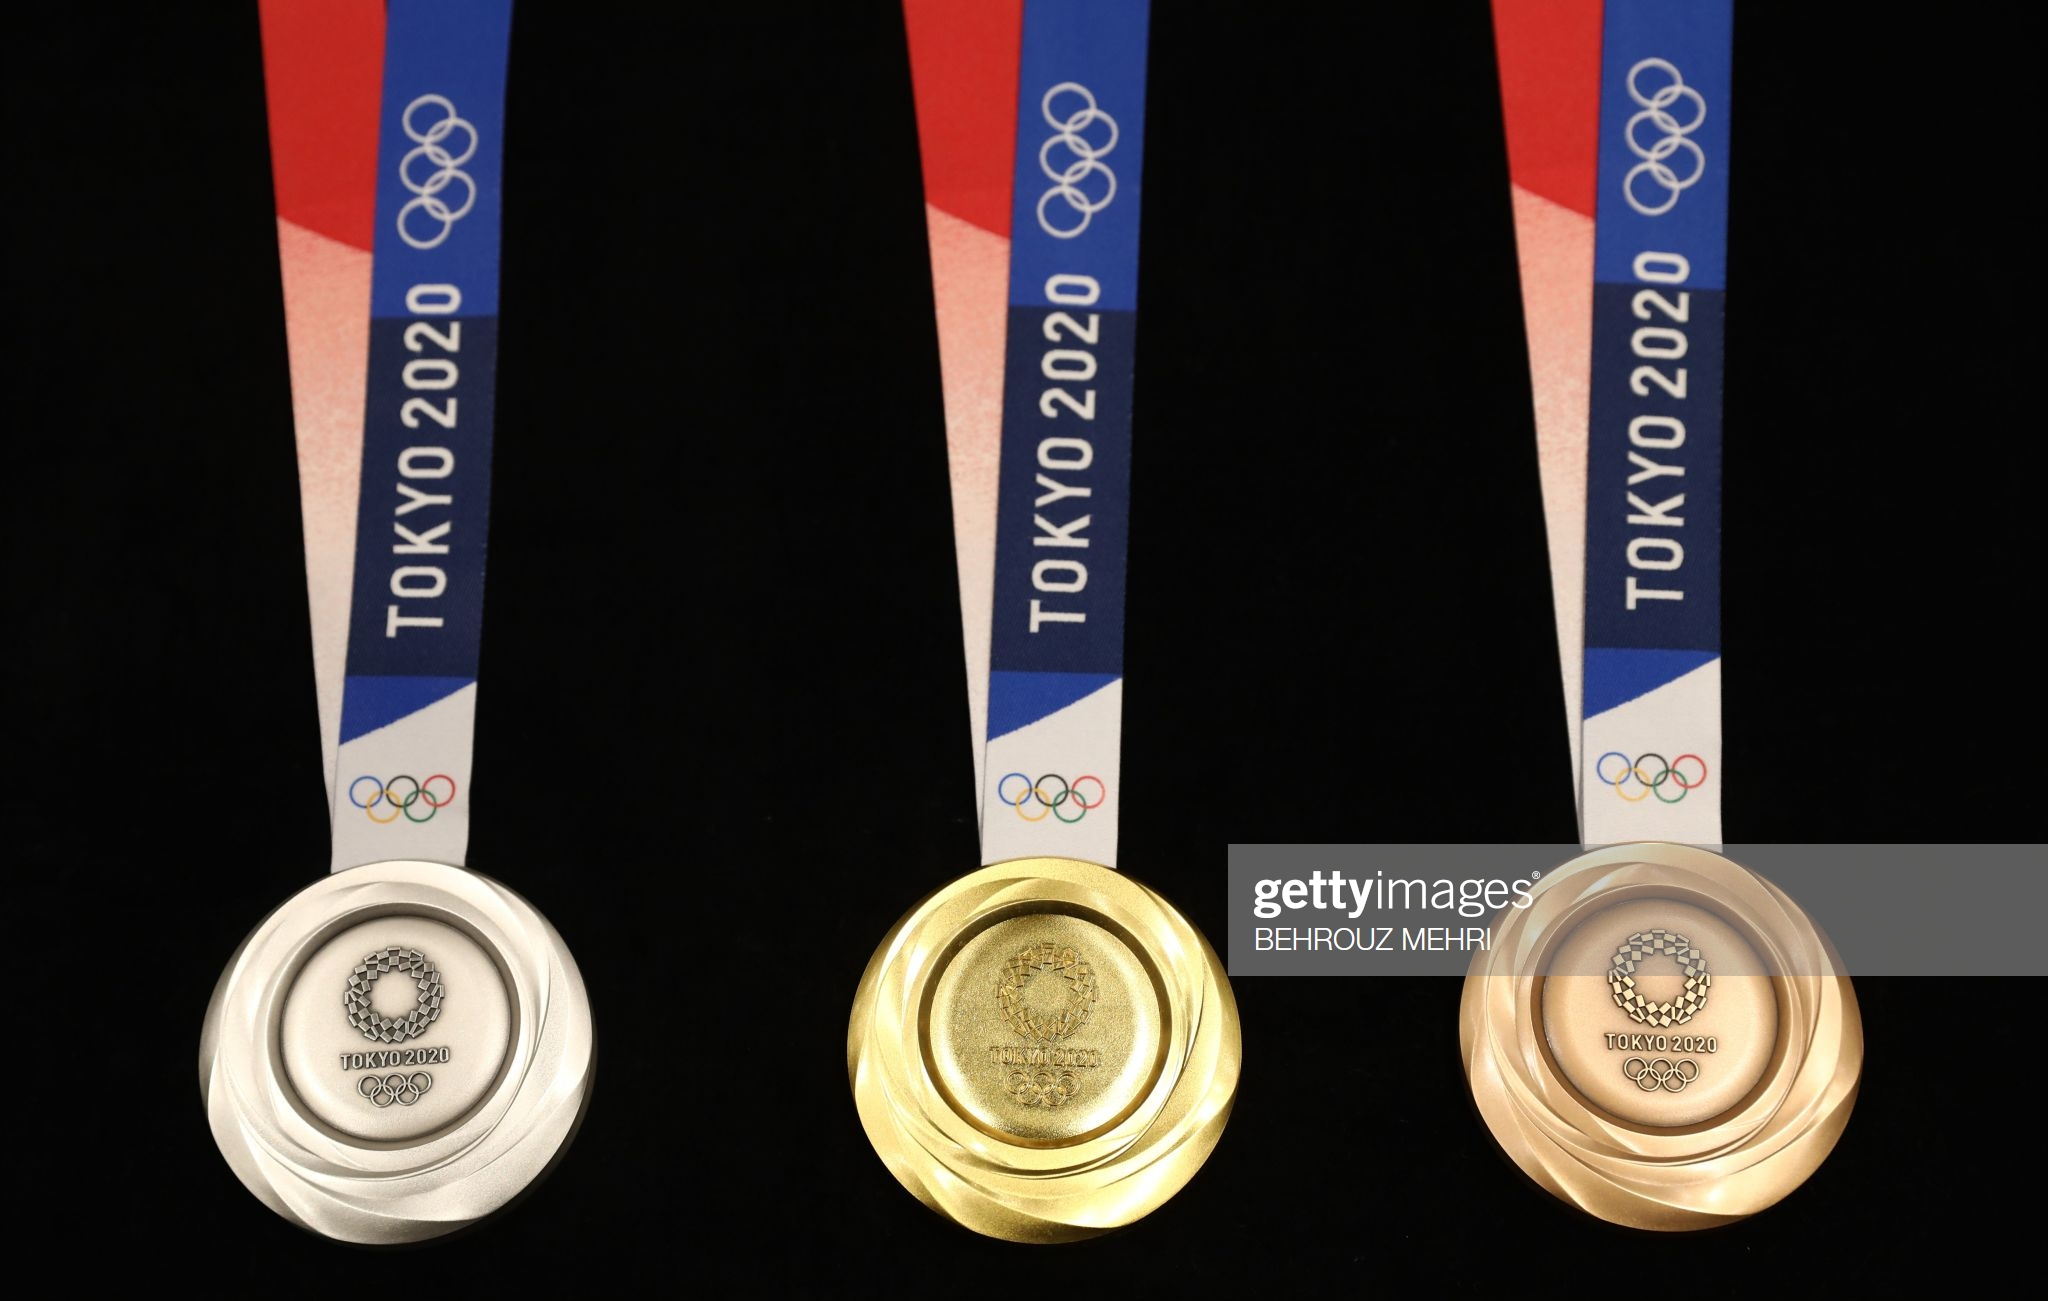 Photo from the 2020 Olympic Games Medal unveiling ceremony in Tokyo, Japan, 2019. (Photo: BEHROUZ MEHRI/AFP via Getty Images)